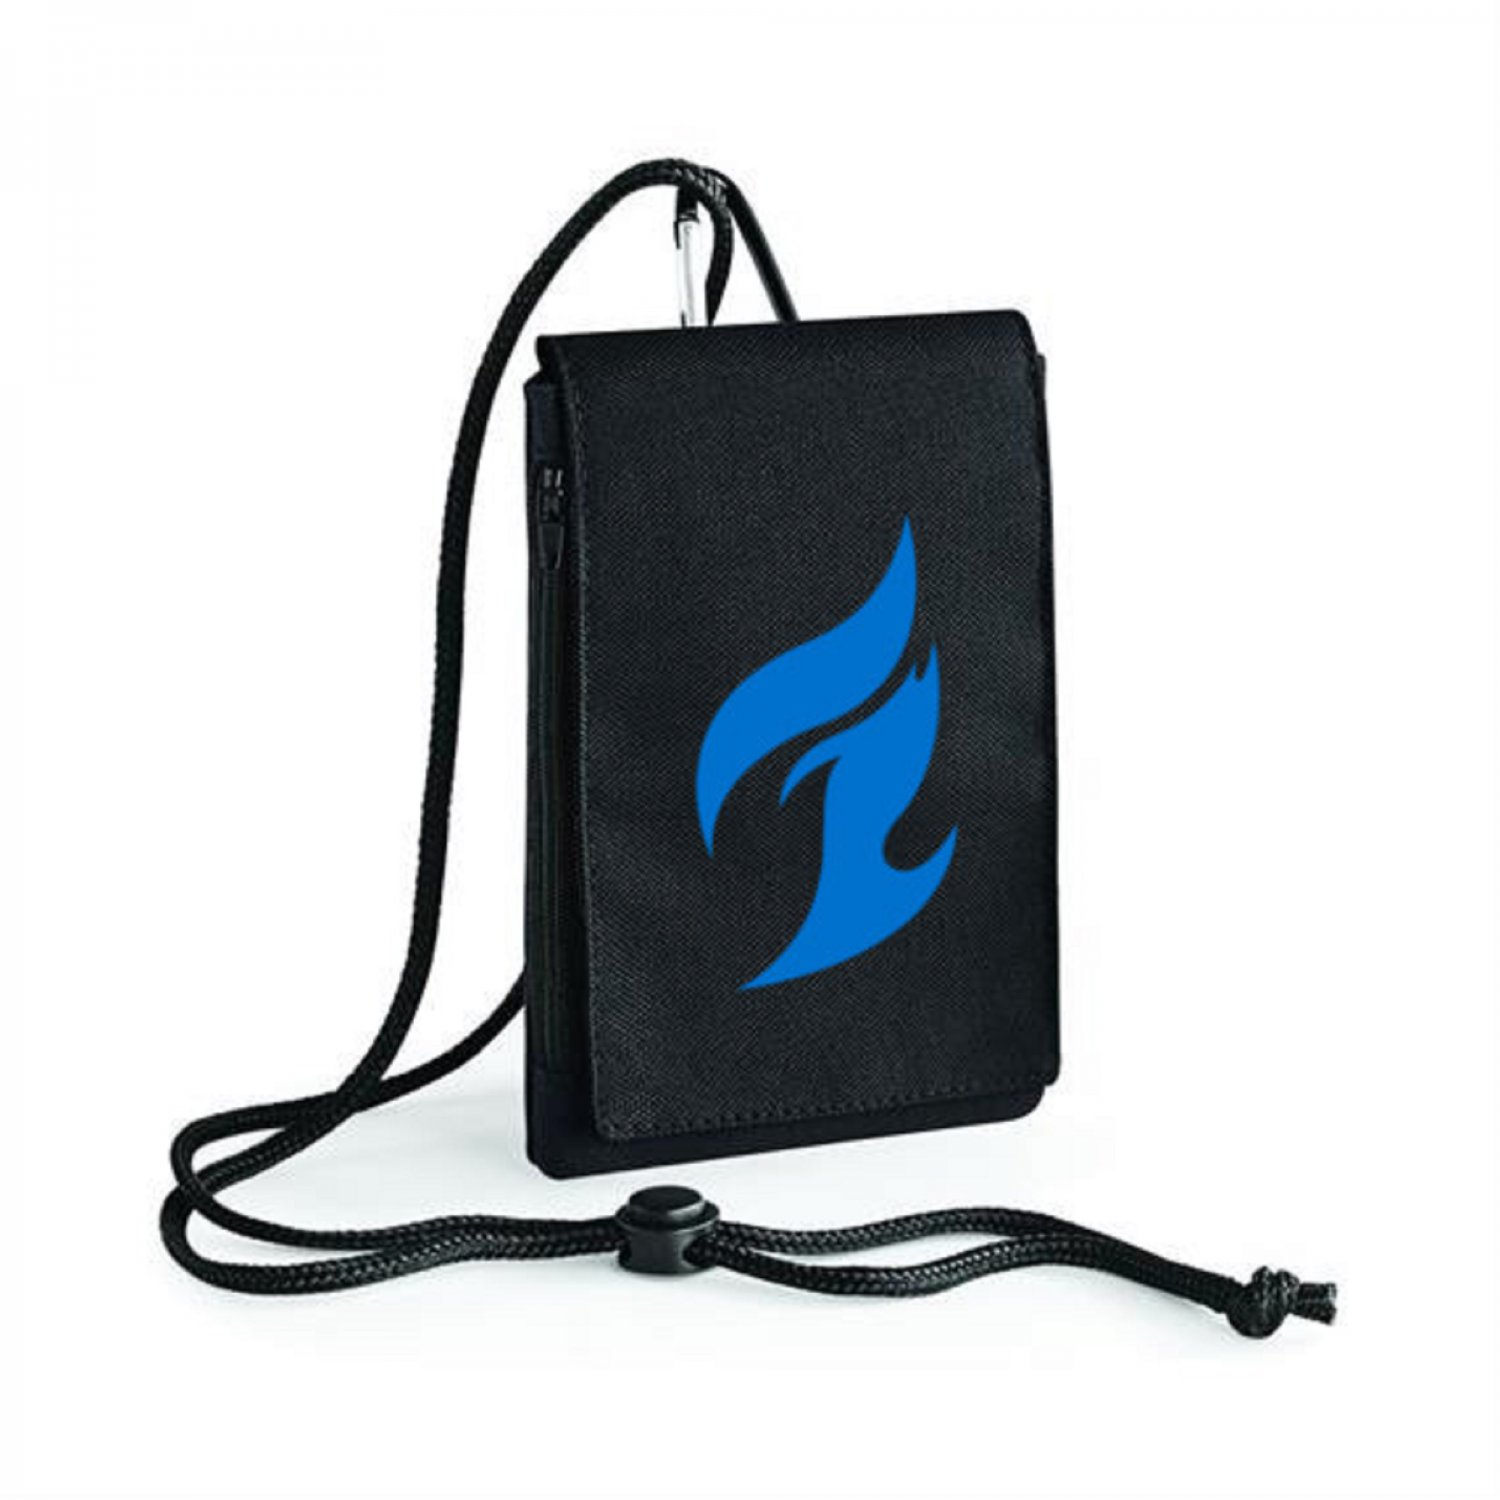 Overwatch dallas fuel Inspired Bagbase Phone Pouch